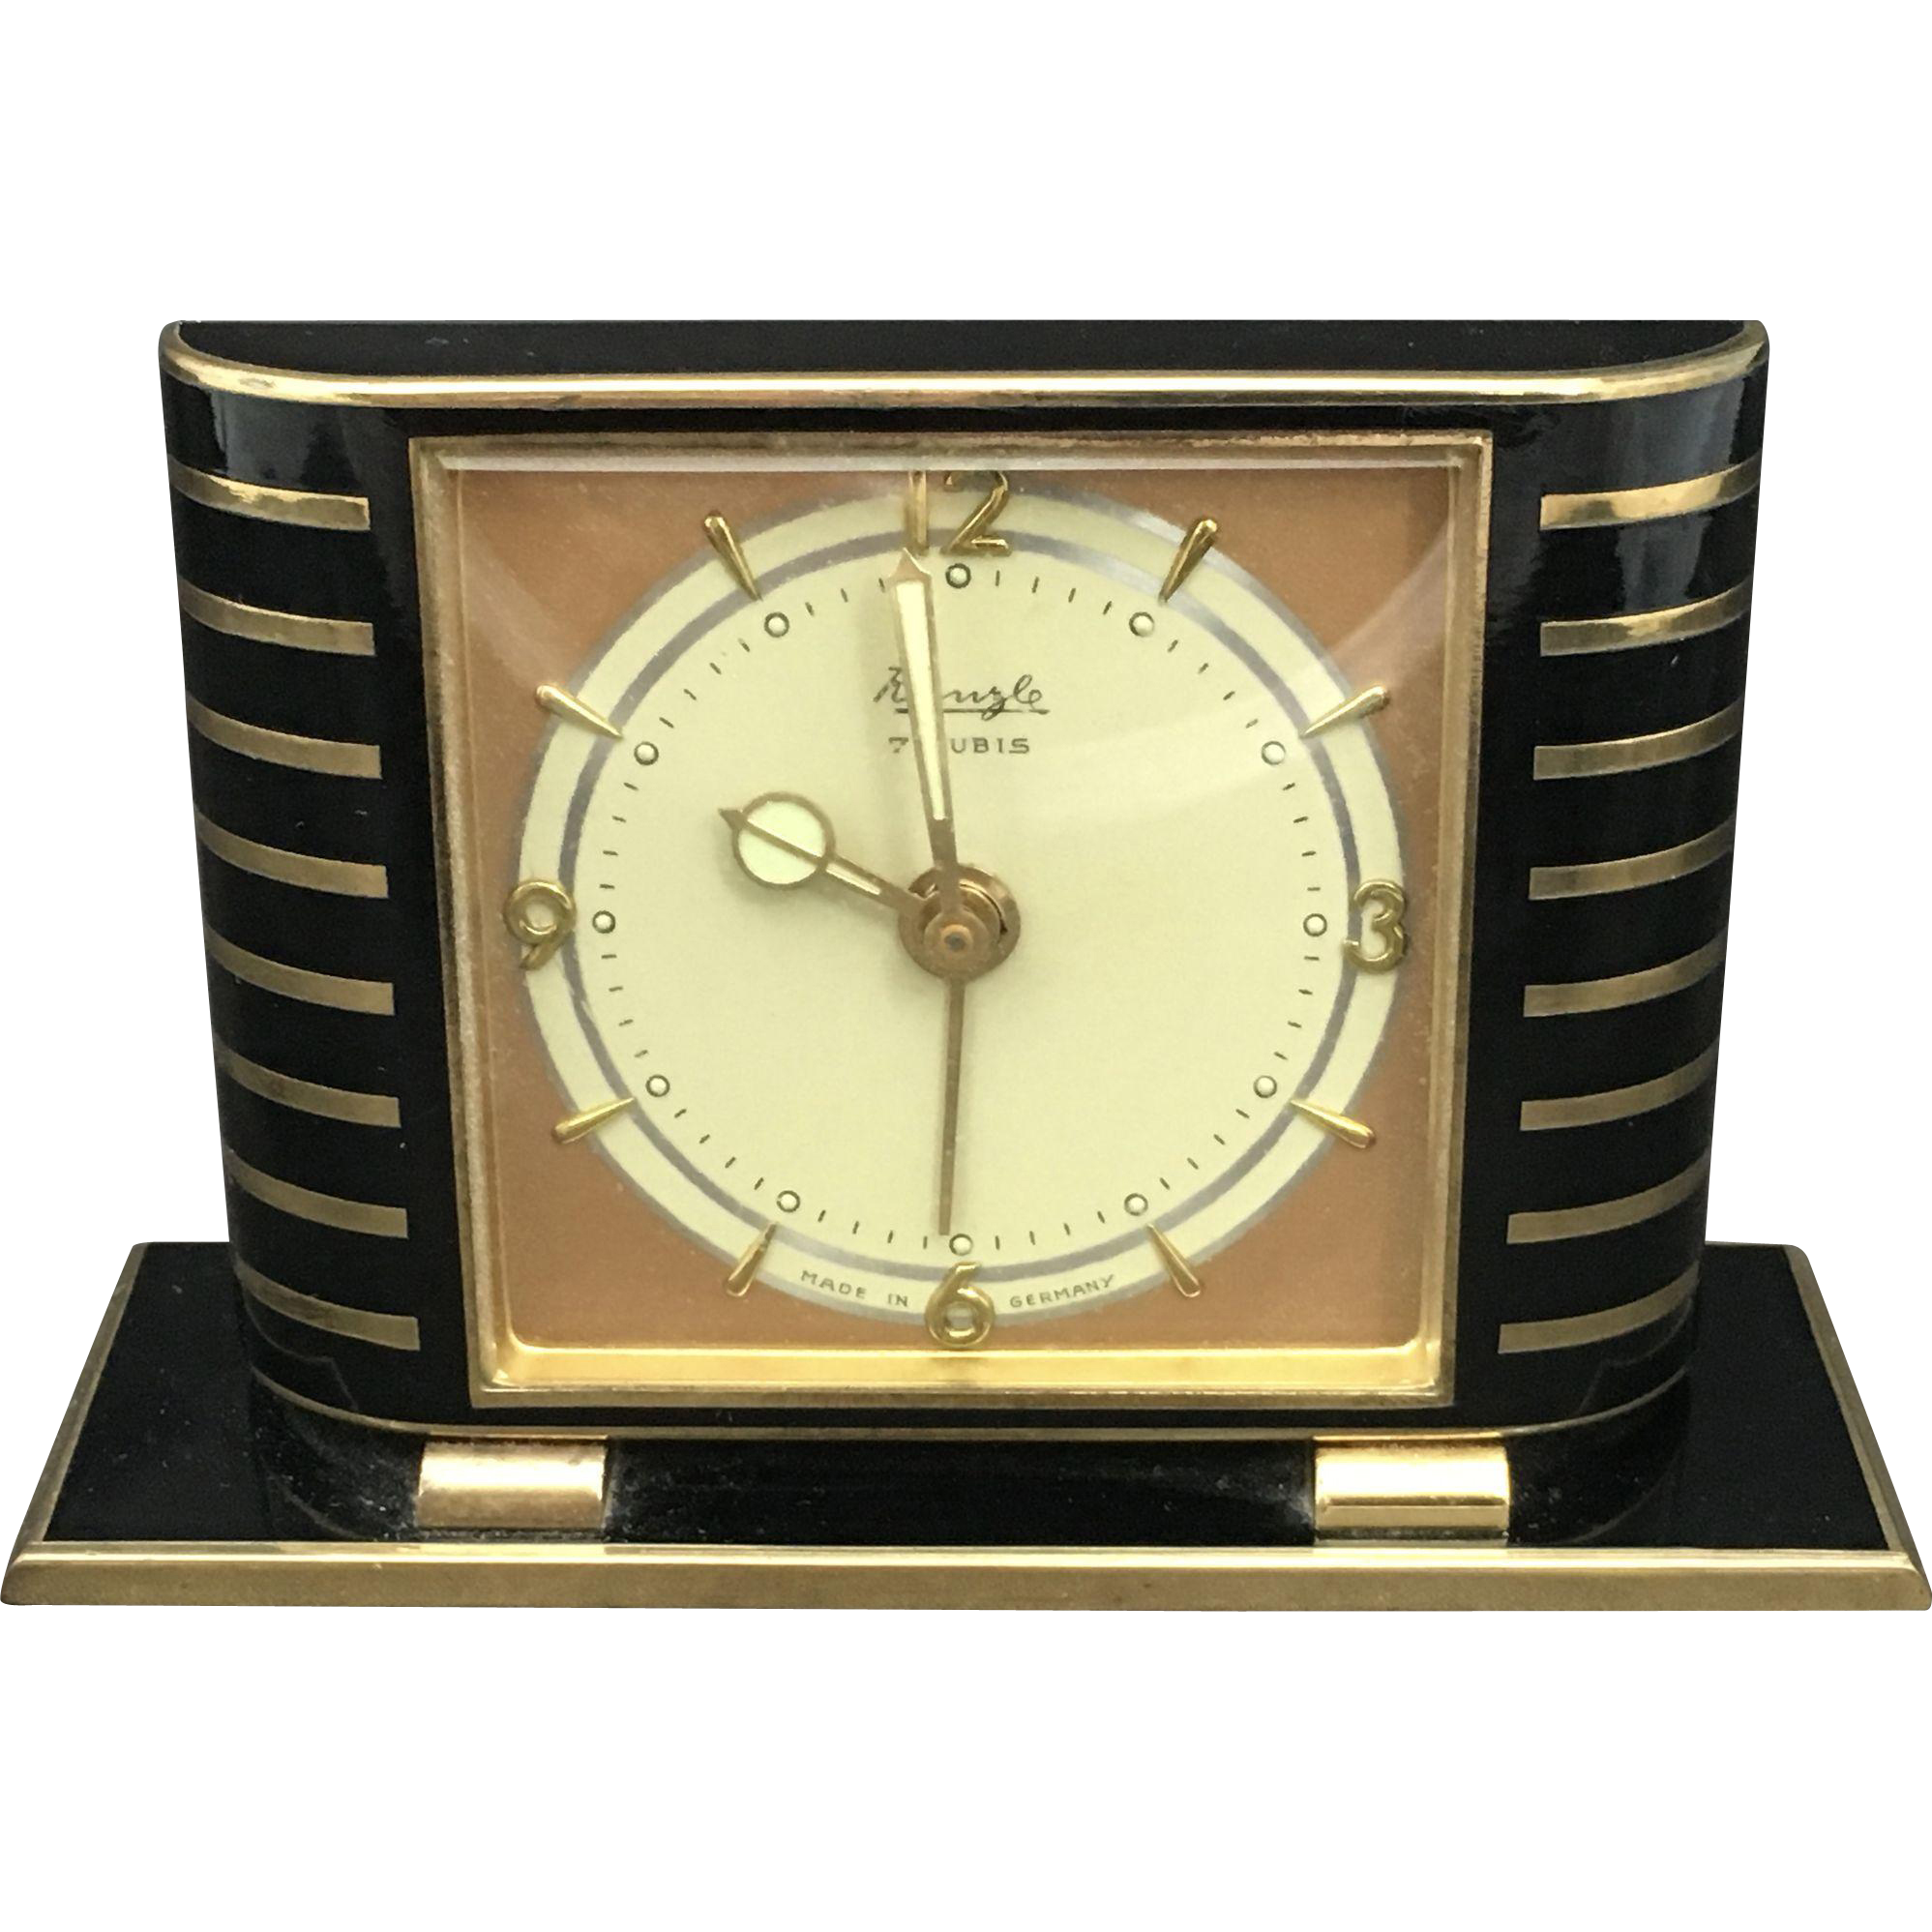 Art deco kienzle table alarm clock from Art deco alarm clocks